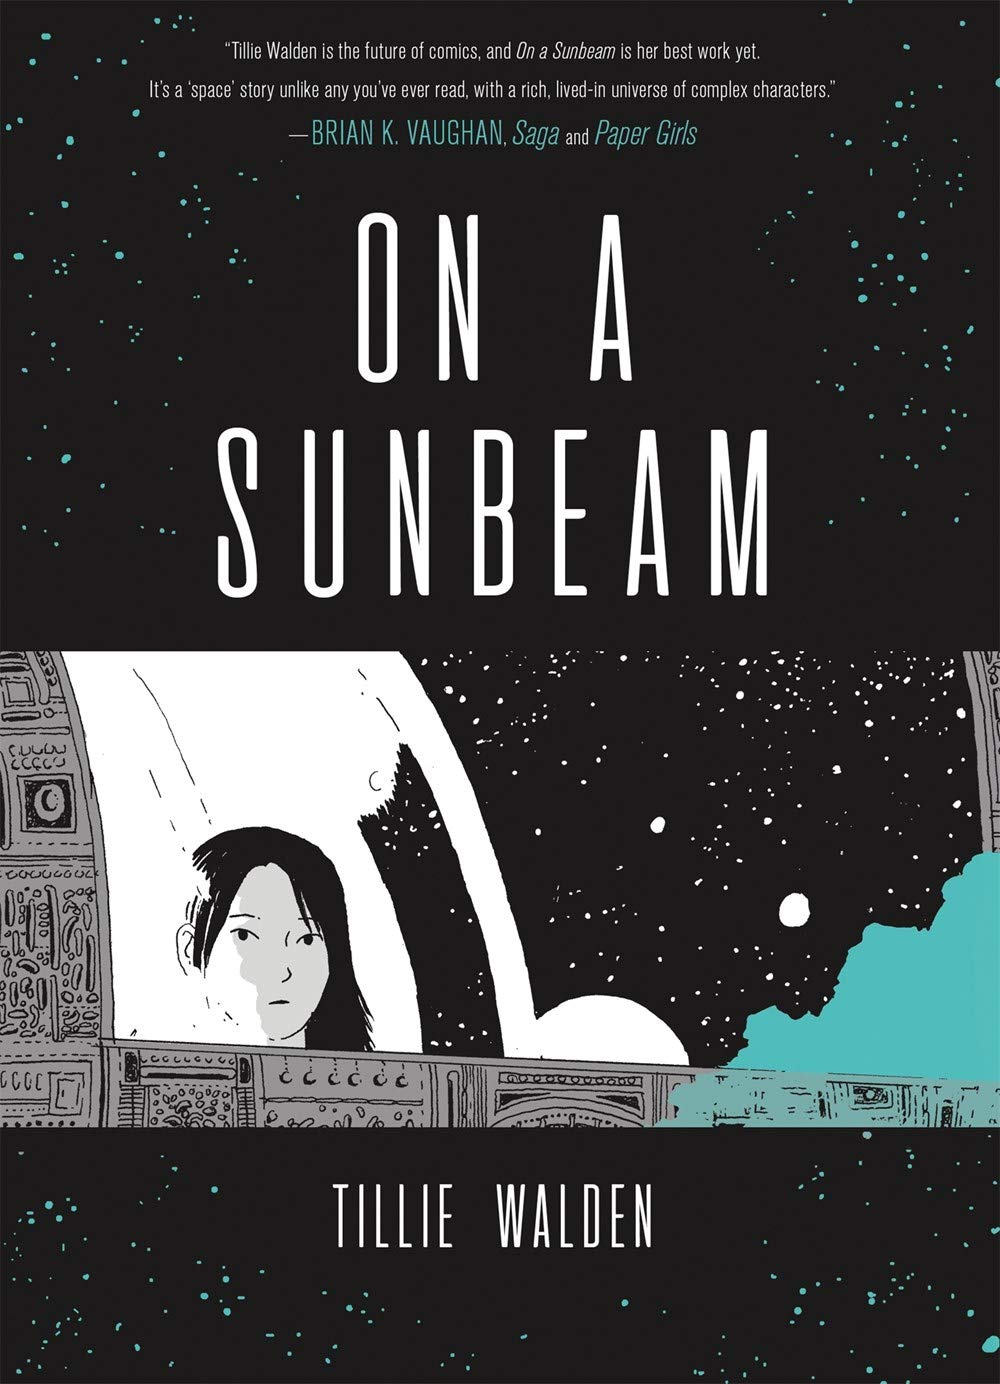 Amazon.com: On a Sunbeam (9781250178138): Walden, Tillie: Books